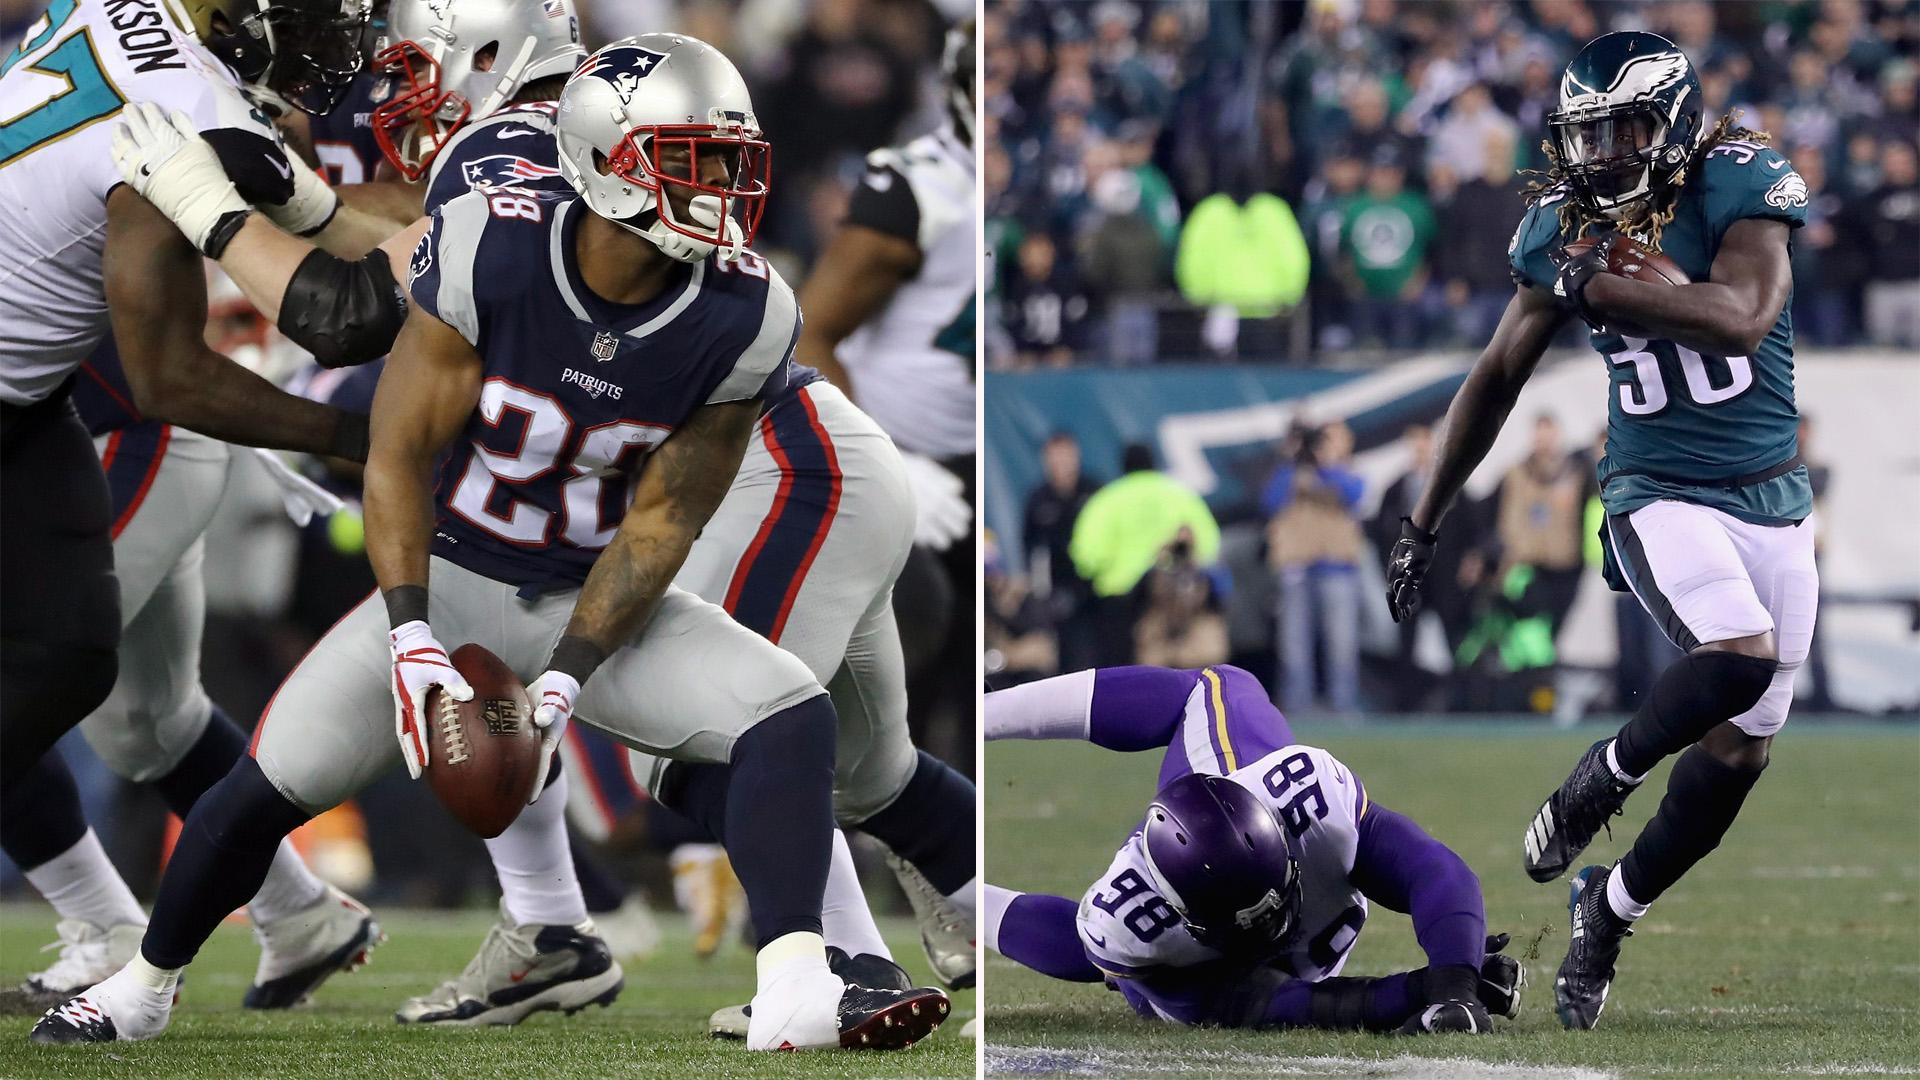 compare and contrast nba to nfl Contrast this to football where most contests last sunday-monday, or thursday-monday and you can see how for the daily grinder, nba is a season not to miss more awesome content todays nba vegas odds.